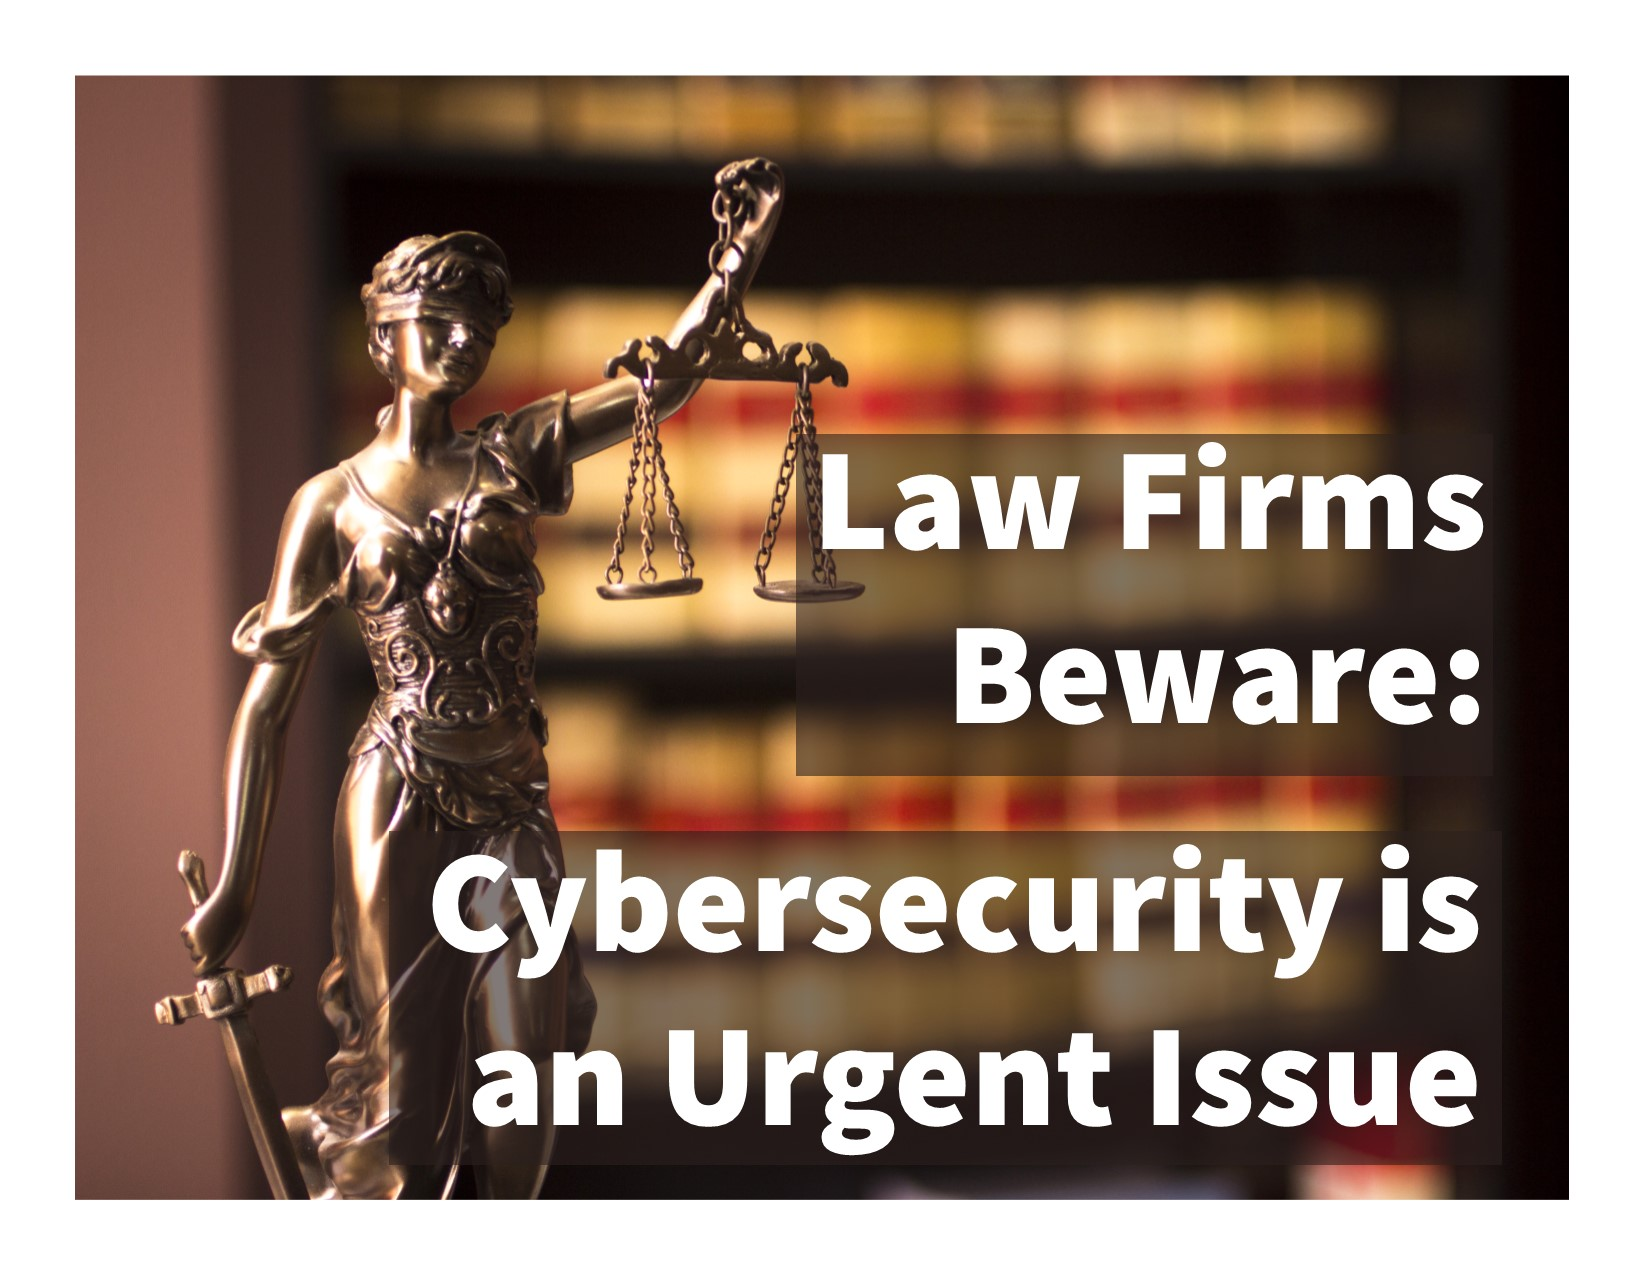 Law Firms Beware: Cybersecurity is an Urgent Issue